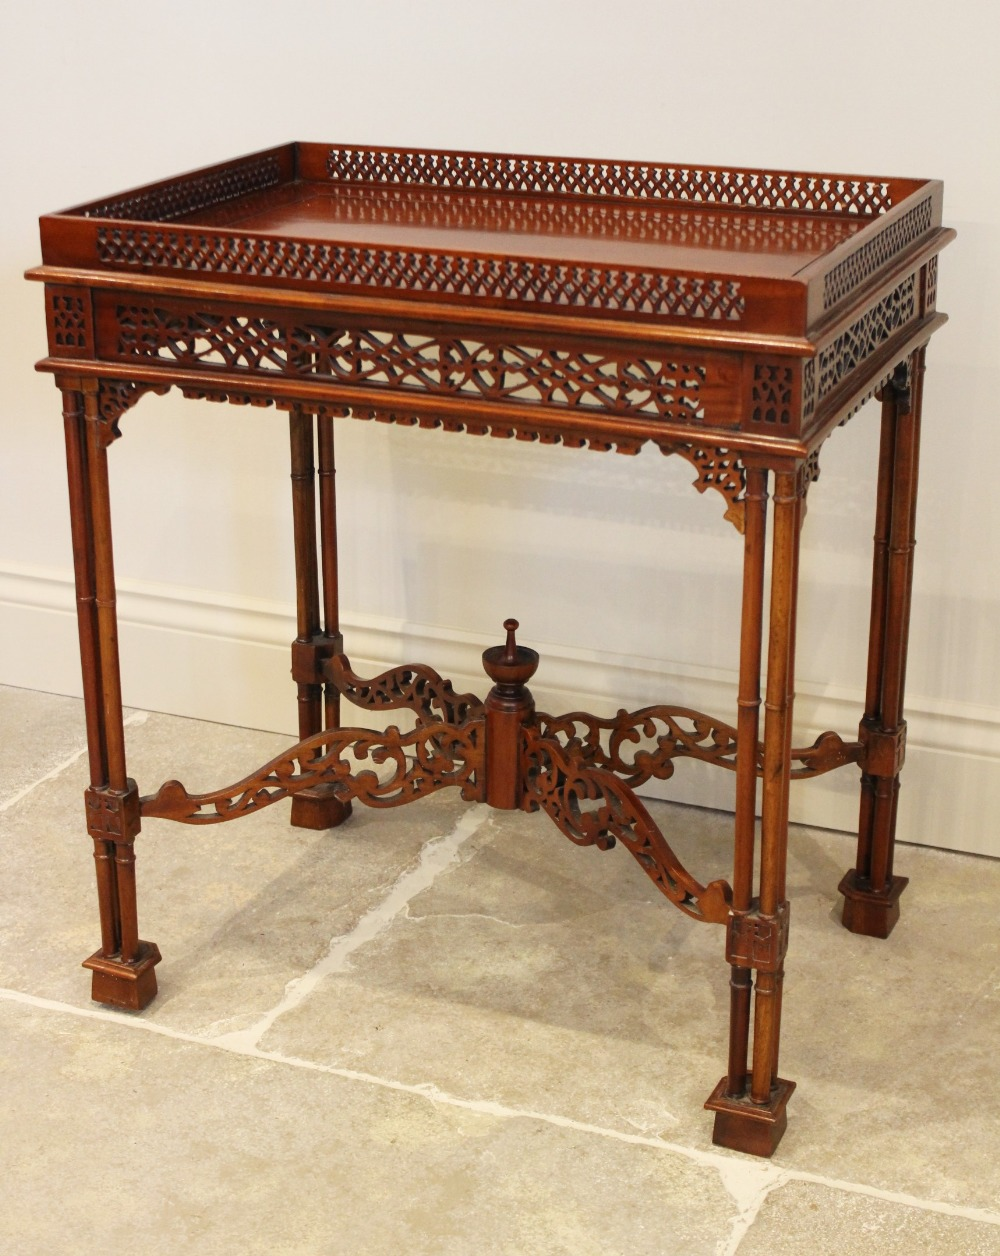 A Chinese Chippendale style mahogany silver table, late 20th century, the rectangular top with a